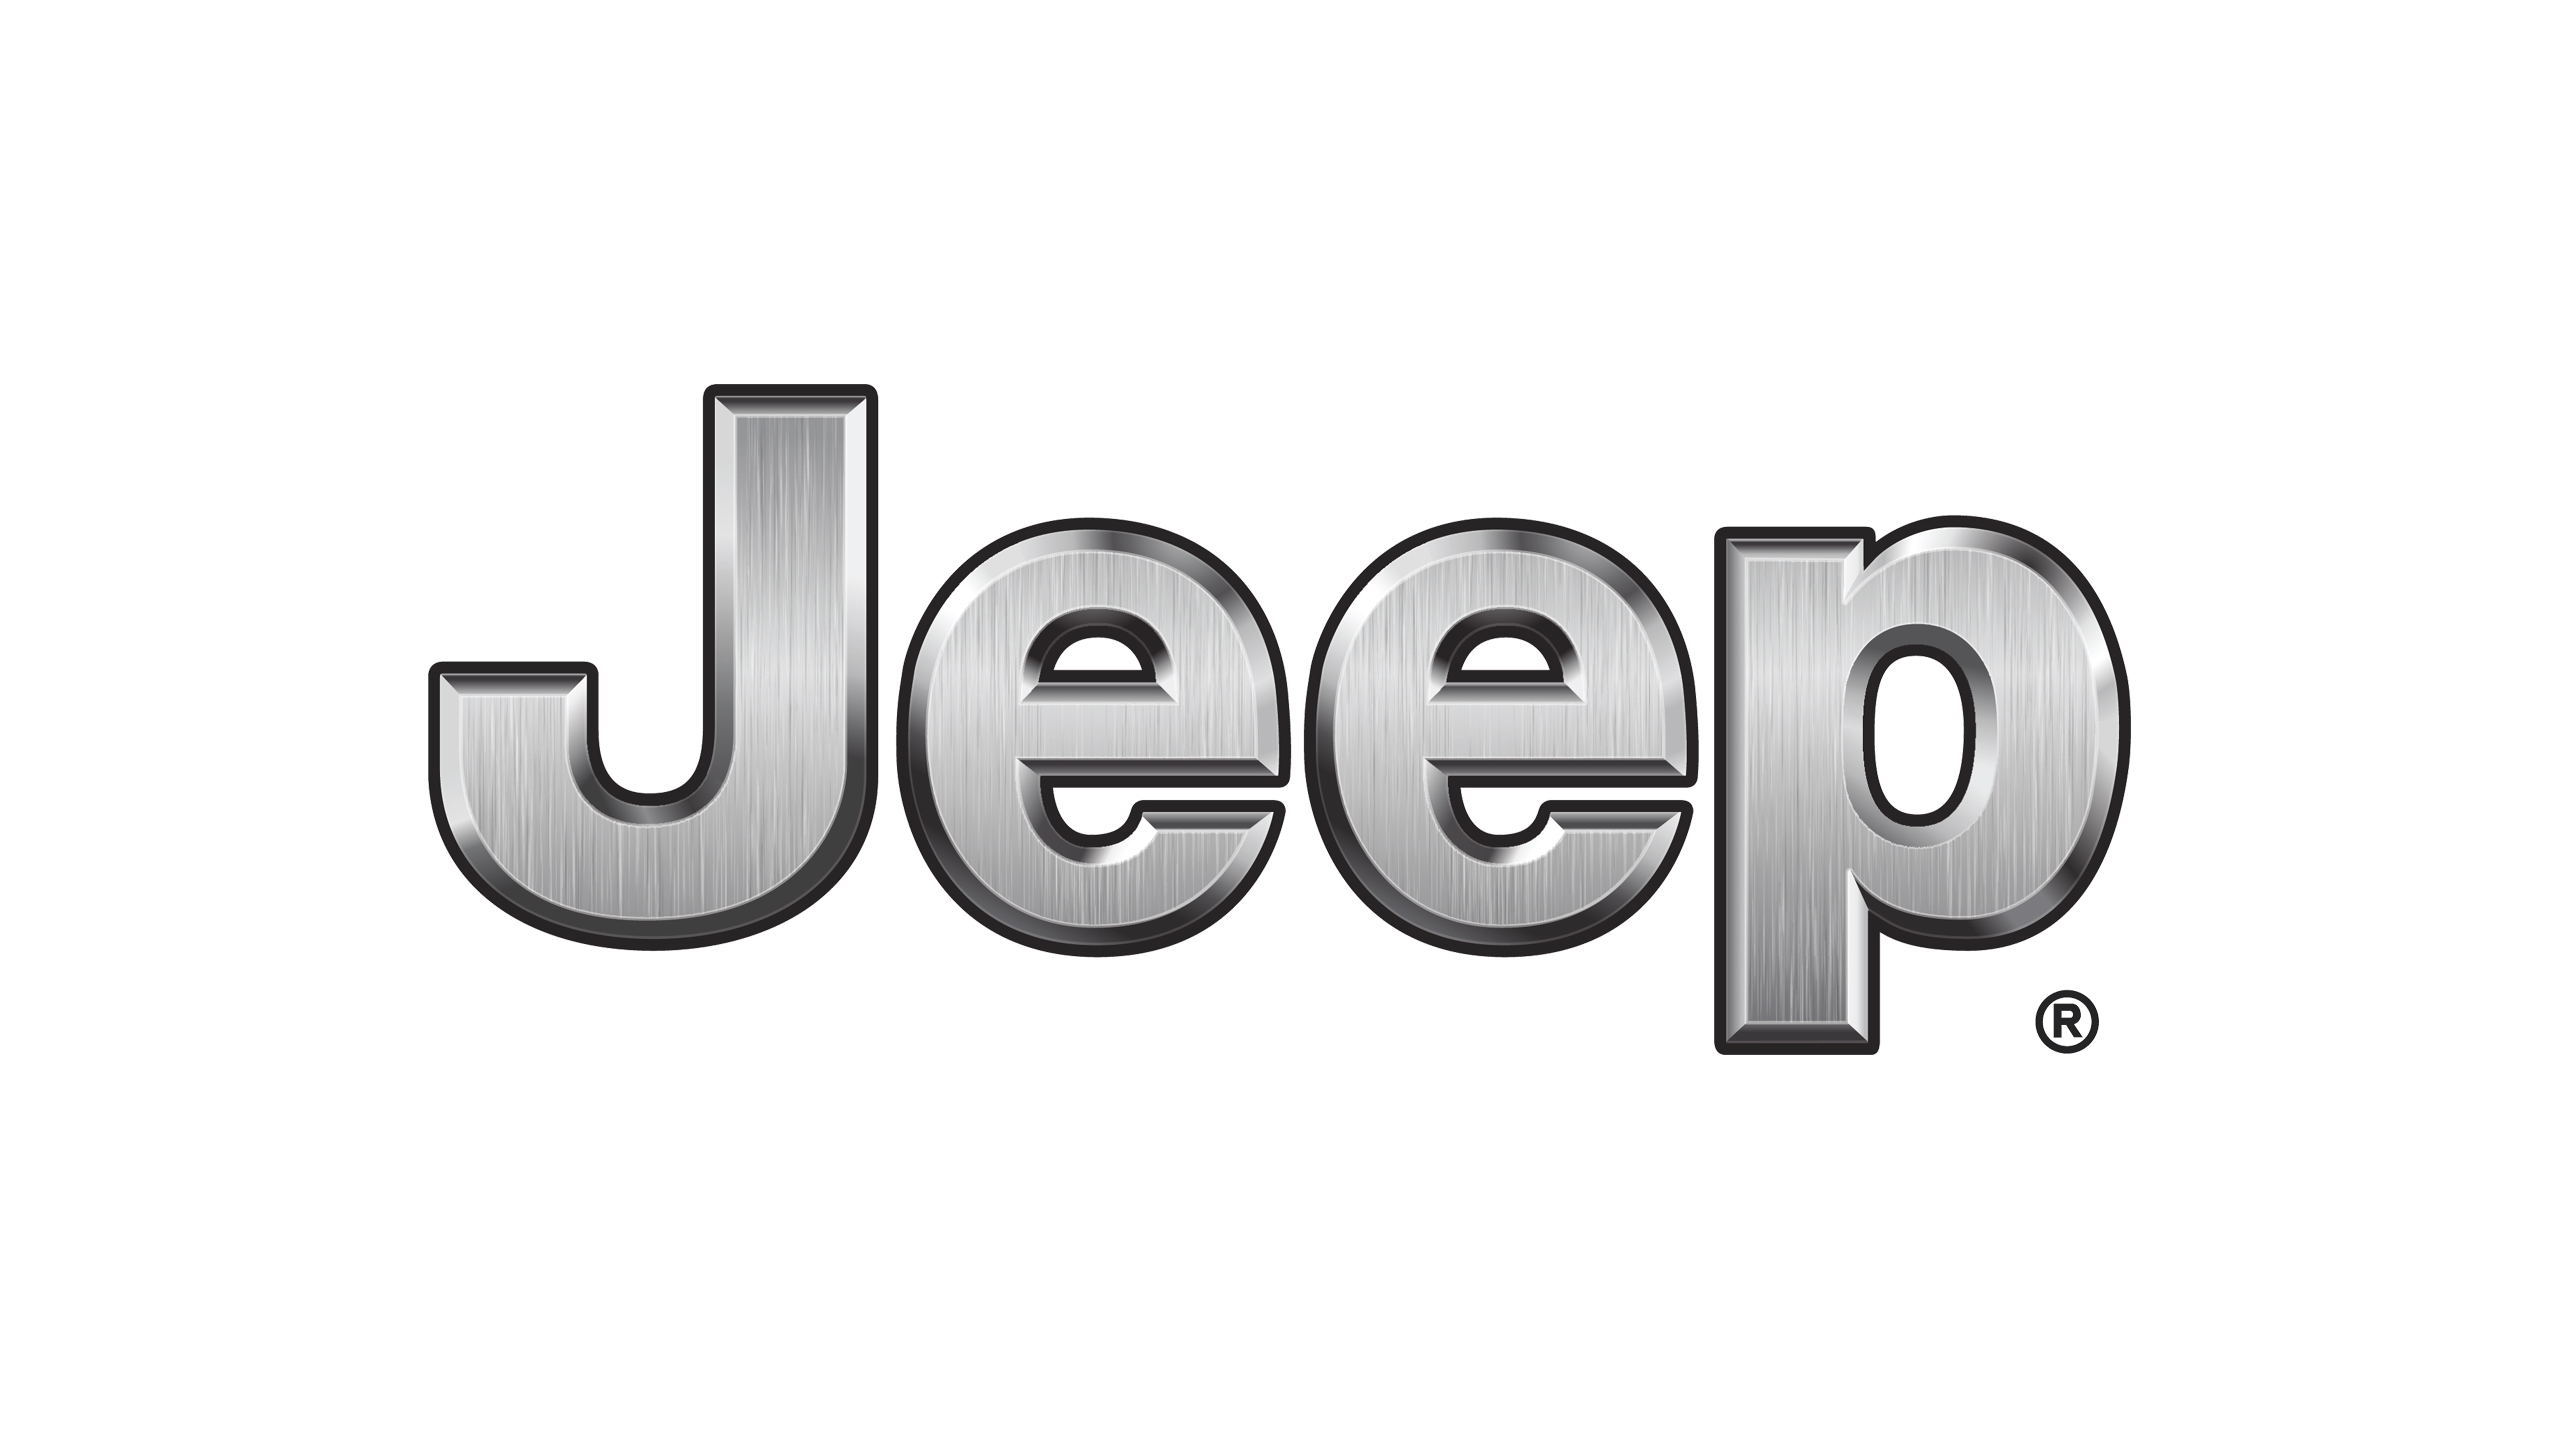 Jeep-refaire-cle-serrurier-automobile-vo